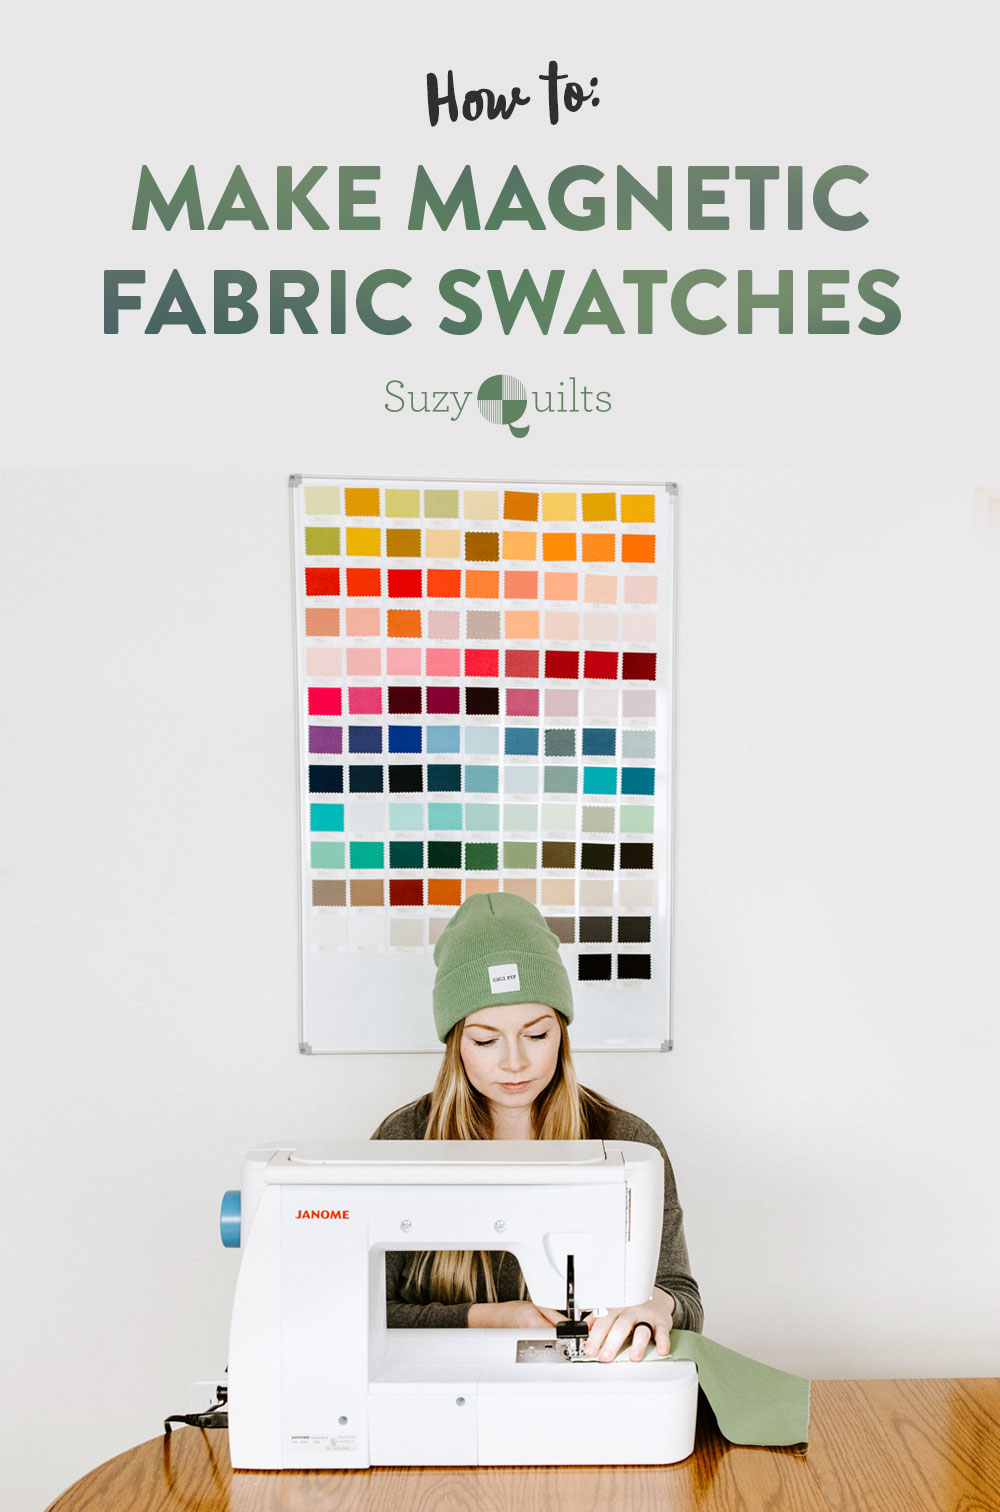 This fabric tutorial shows how to make magnetic fabric swatch cards from the Art Gallery Fabrics Solids color card for your personal use! suzyquilts.com #sewingdiy #sewing